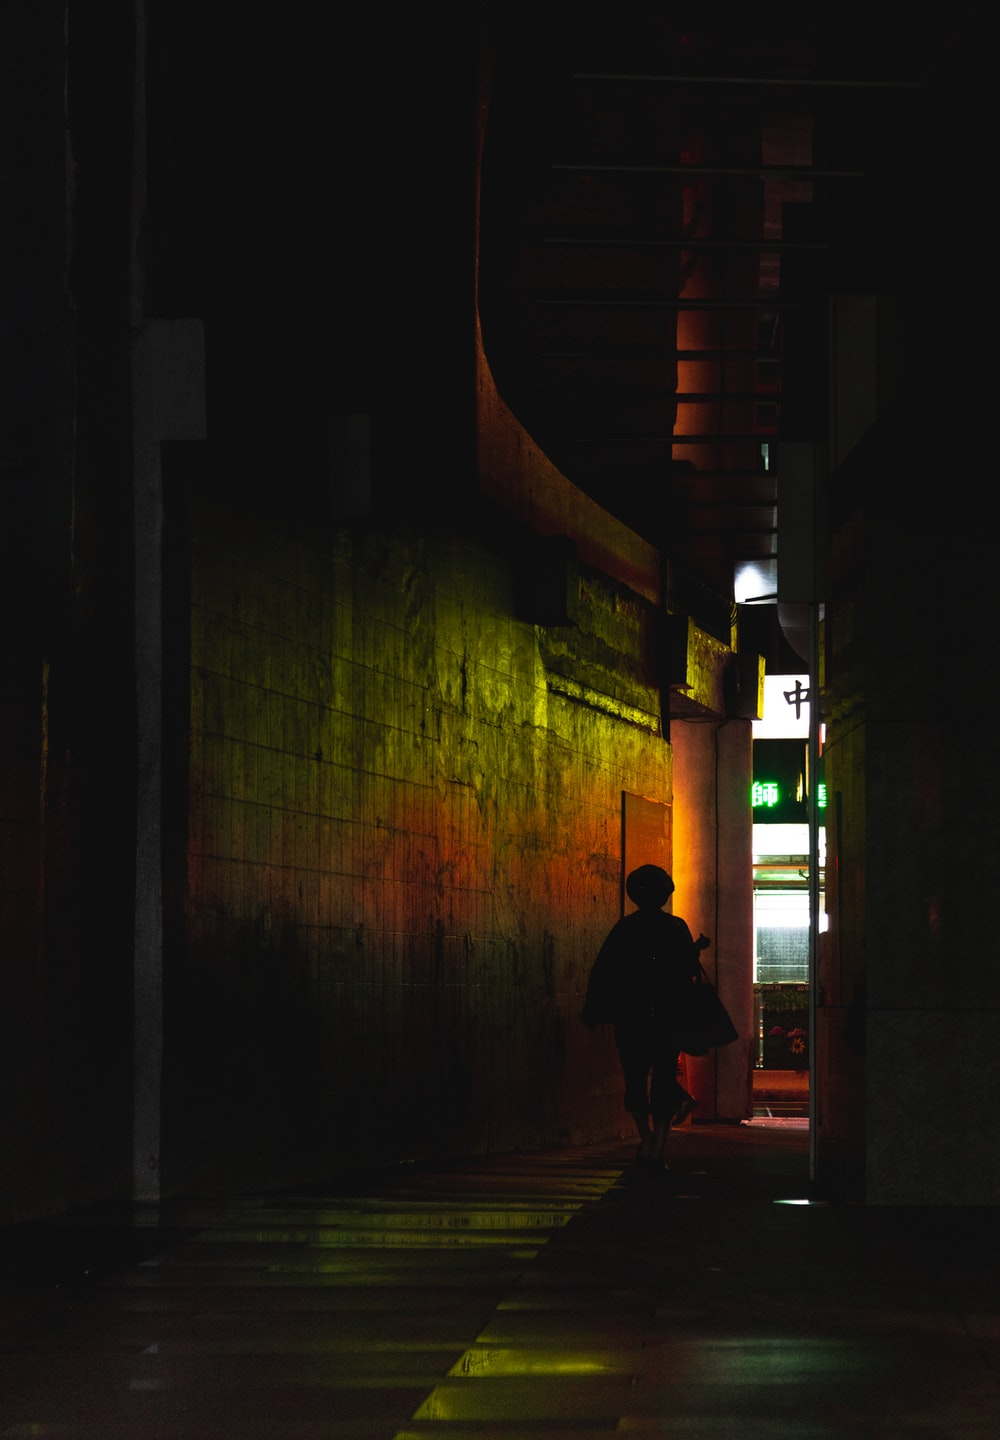 silhouette of person walks on hallway